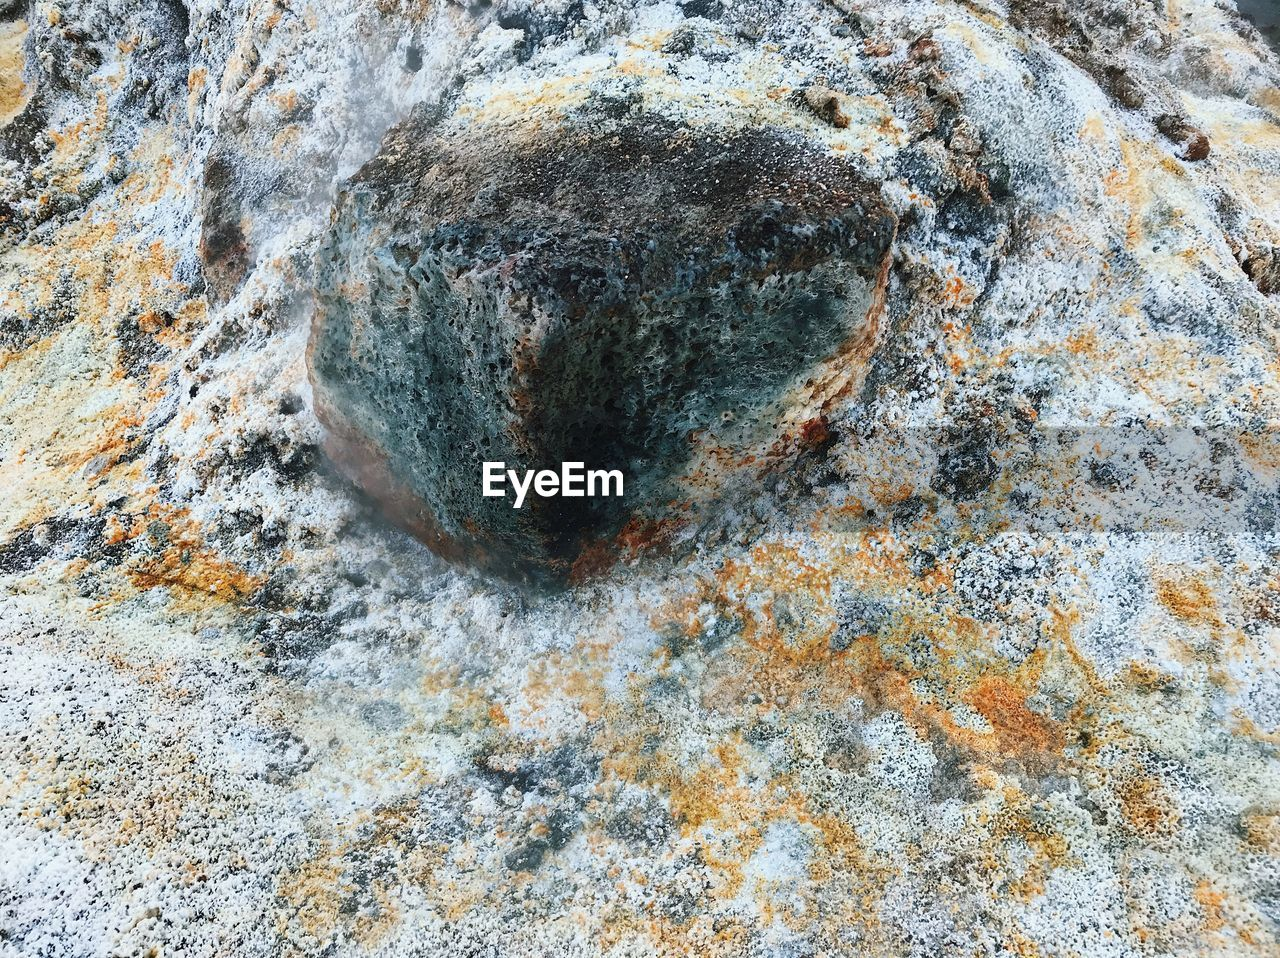 rock, rock - object, solid, textured, full frame, close-up, no people, day, backgrounds, rough, nature, geology, outdoors, pattern, rock formation, beauty in nature, natural pattern, weathered, mineral, high angle view, lichen, layered, eroded